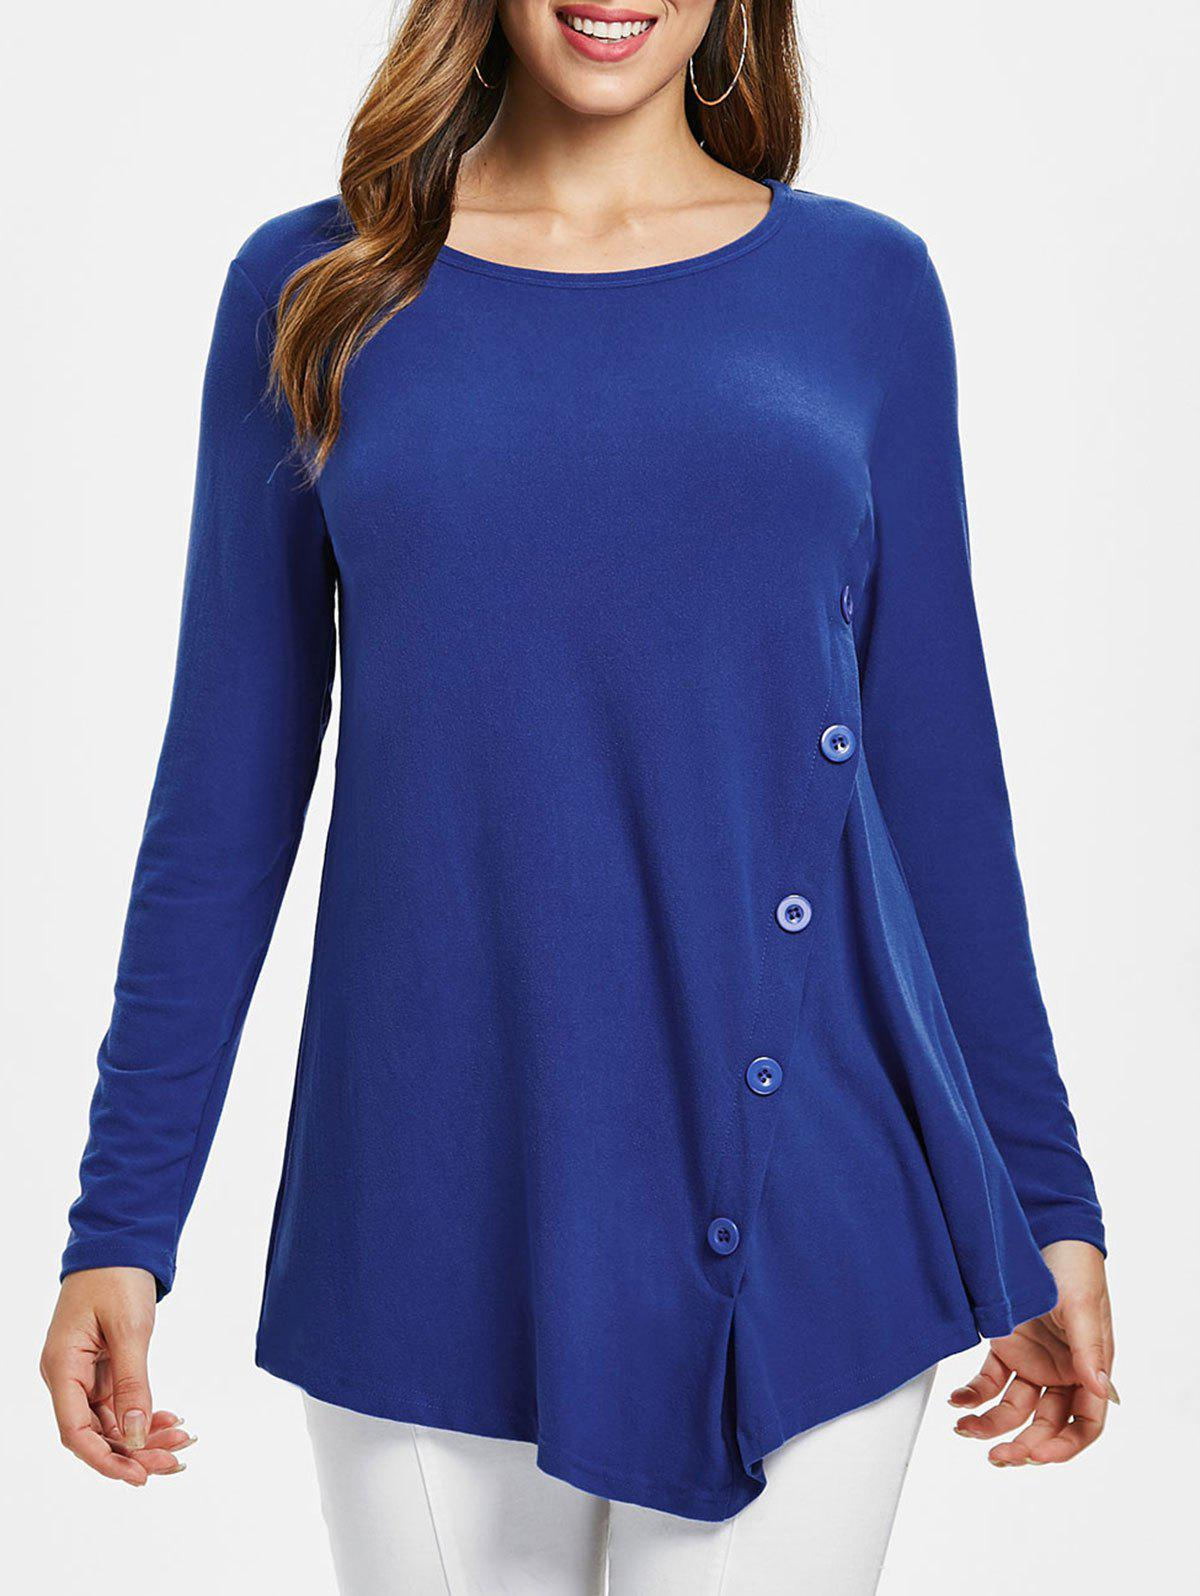 Button Embellished Asymmetrical T-shirt - BLUE M